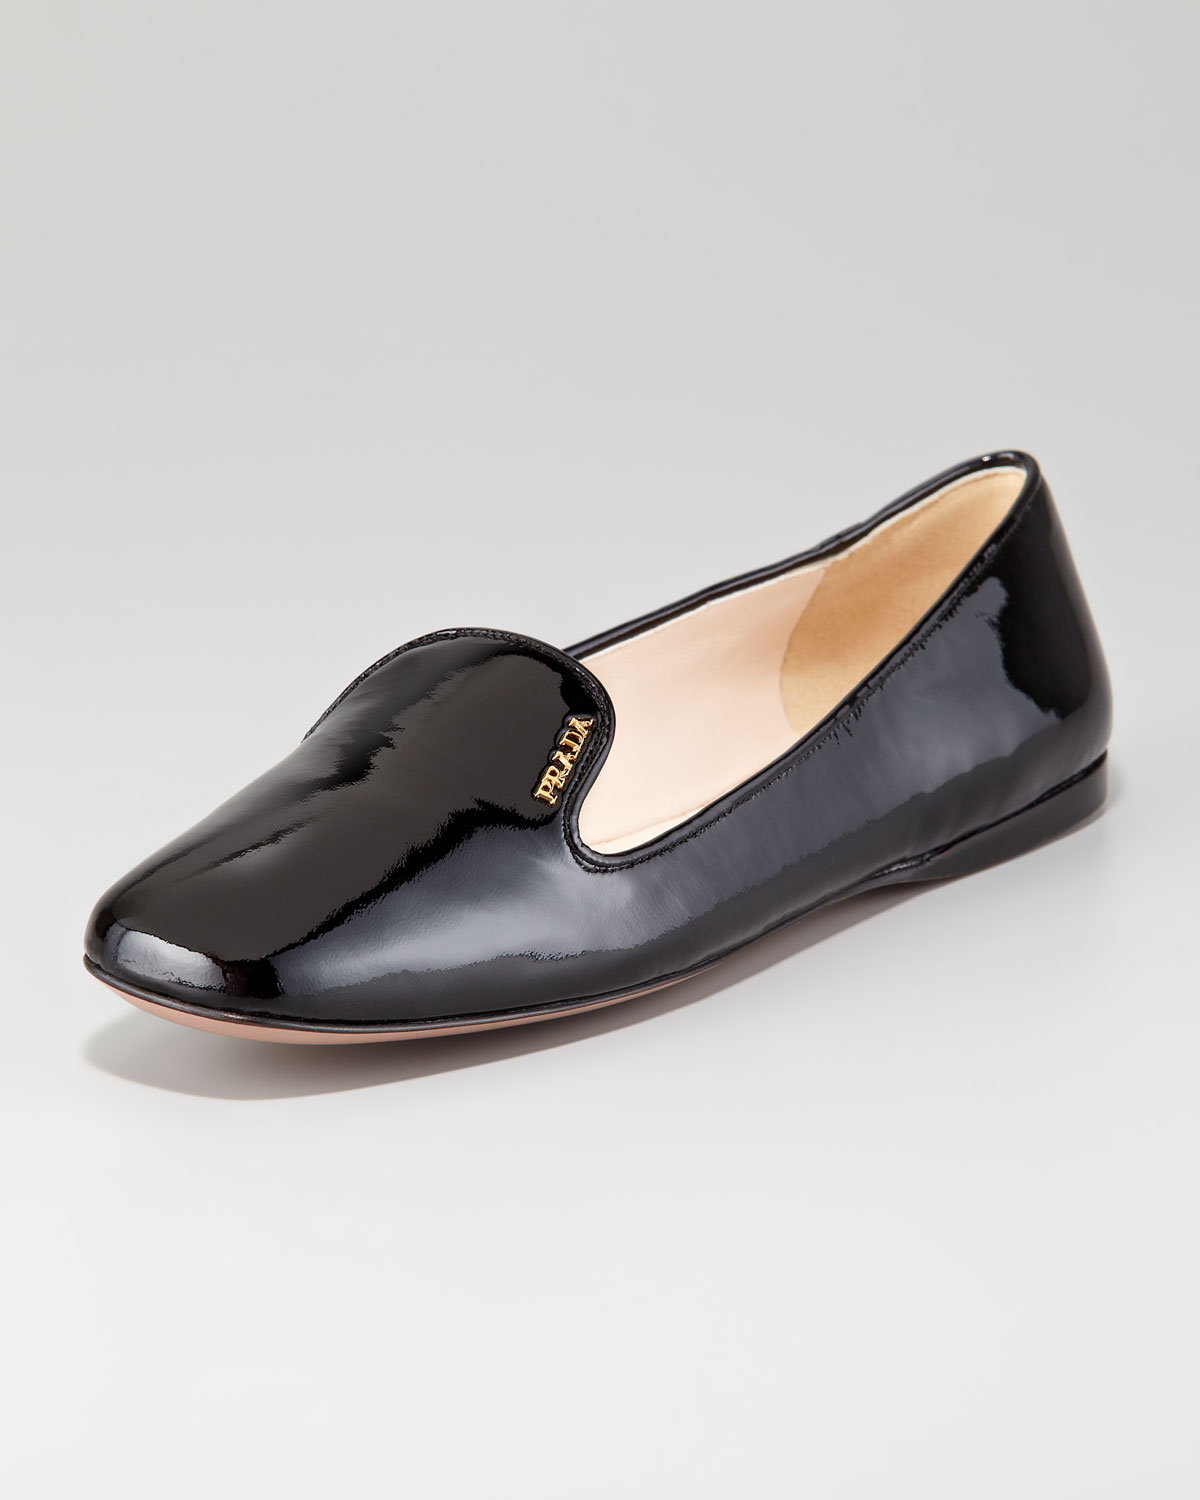 free shipping new styles new styles sale online Prada Patent Leather Loafers buy cheap buy good selling sale online low price fee shipping cheap price oF9xm2